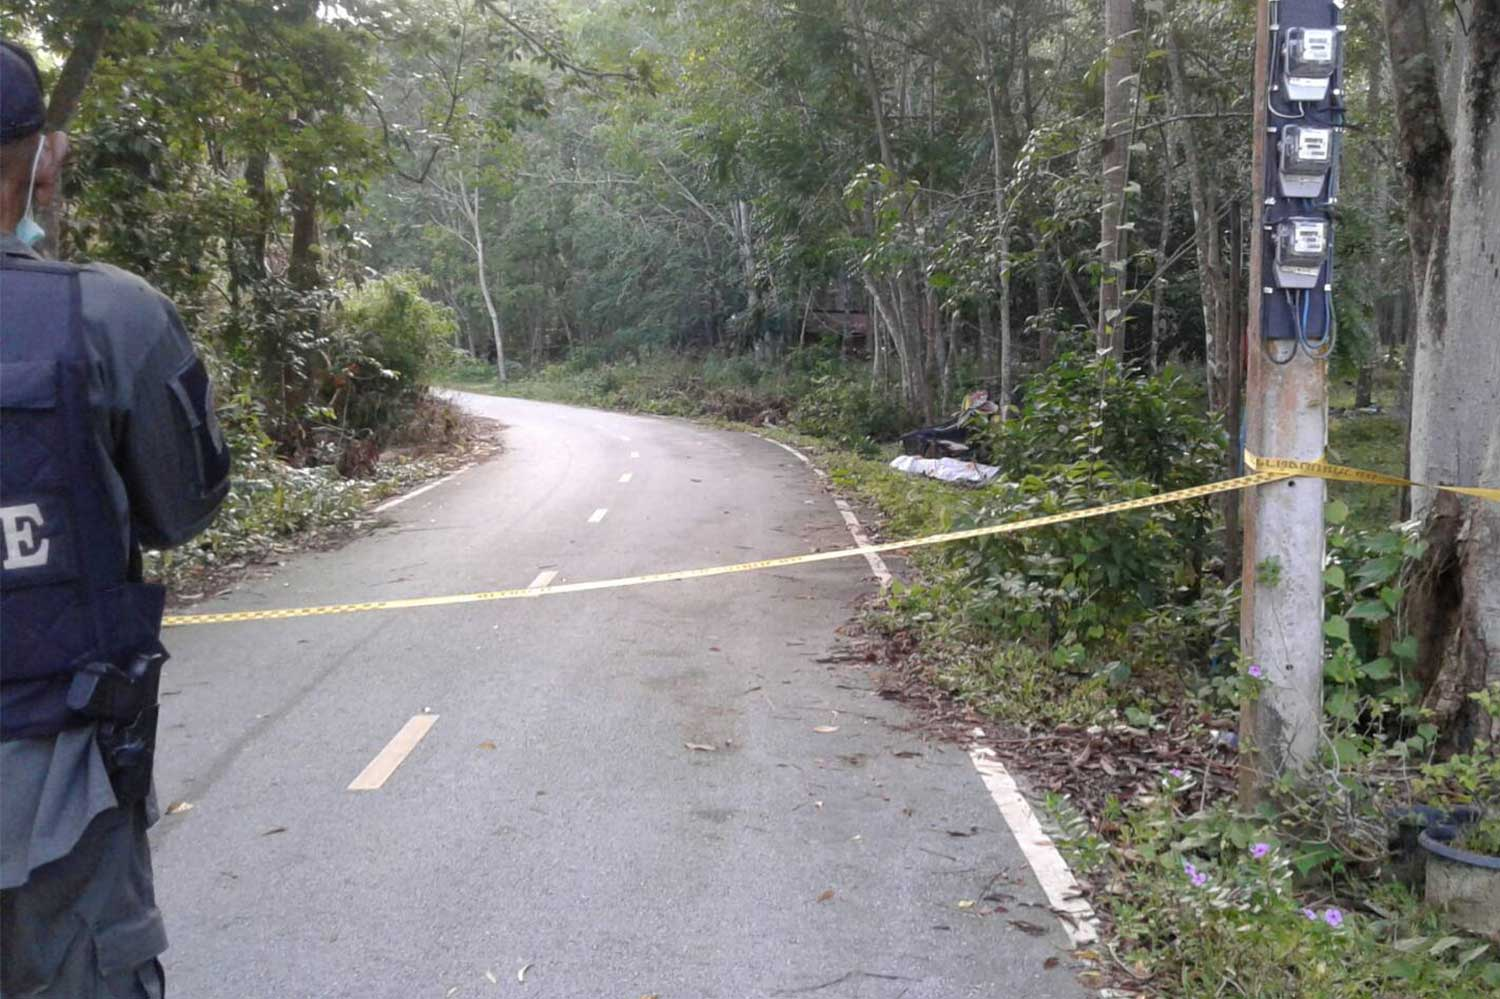 Crime scene tape cordons off the spot where an assistant village head was shot dead on Tuesday morning in Mayo district of Pattani. (Photo: Abdullah Benjakat)